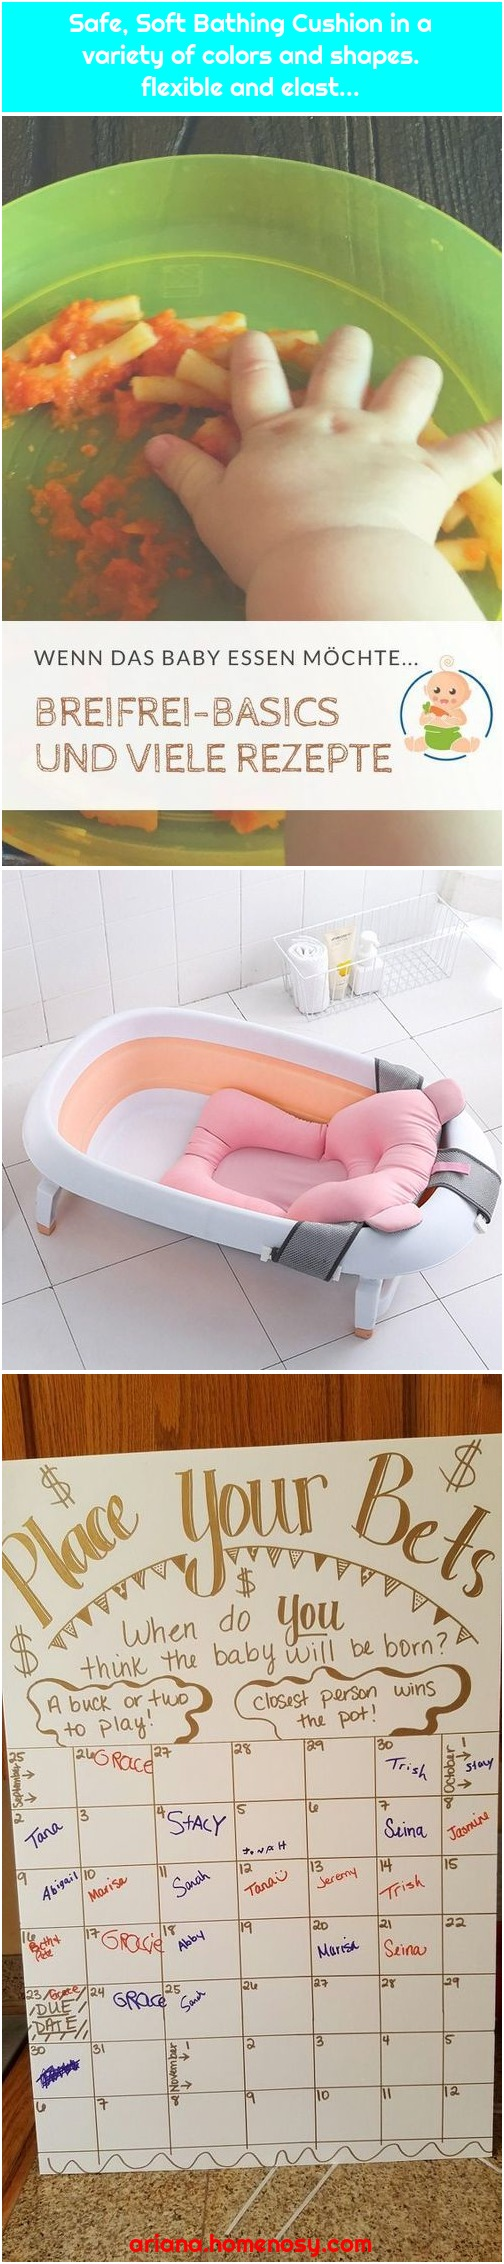 Safe, Soft Bathing Cushion in a variety of colors and shapes. flexible and elast...